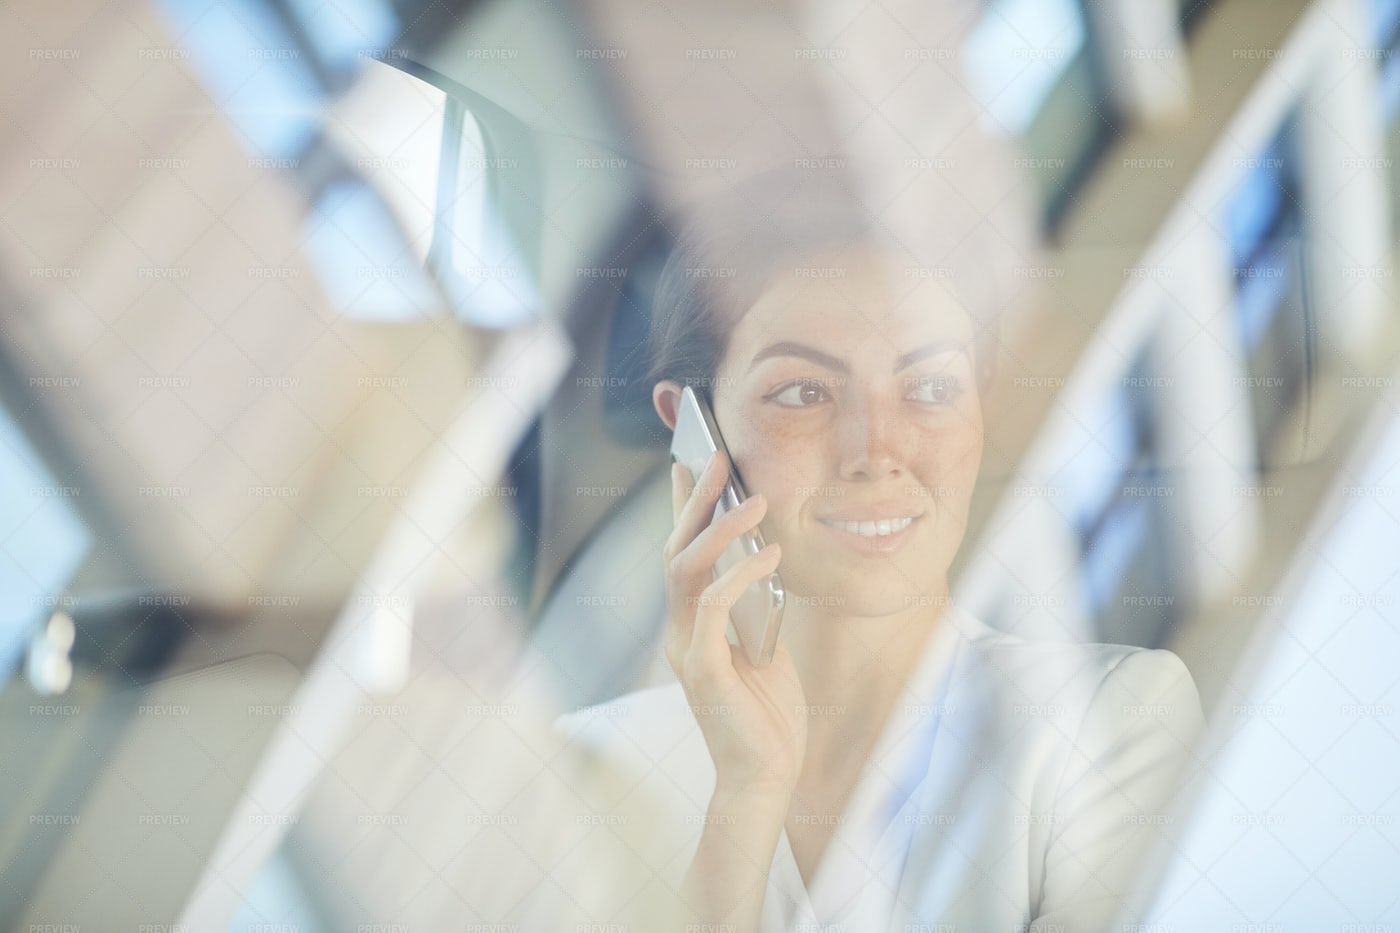 Woman Speaking By Phone On Taxi...: Stock Photos